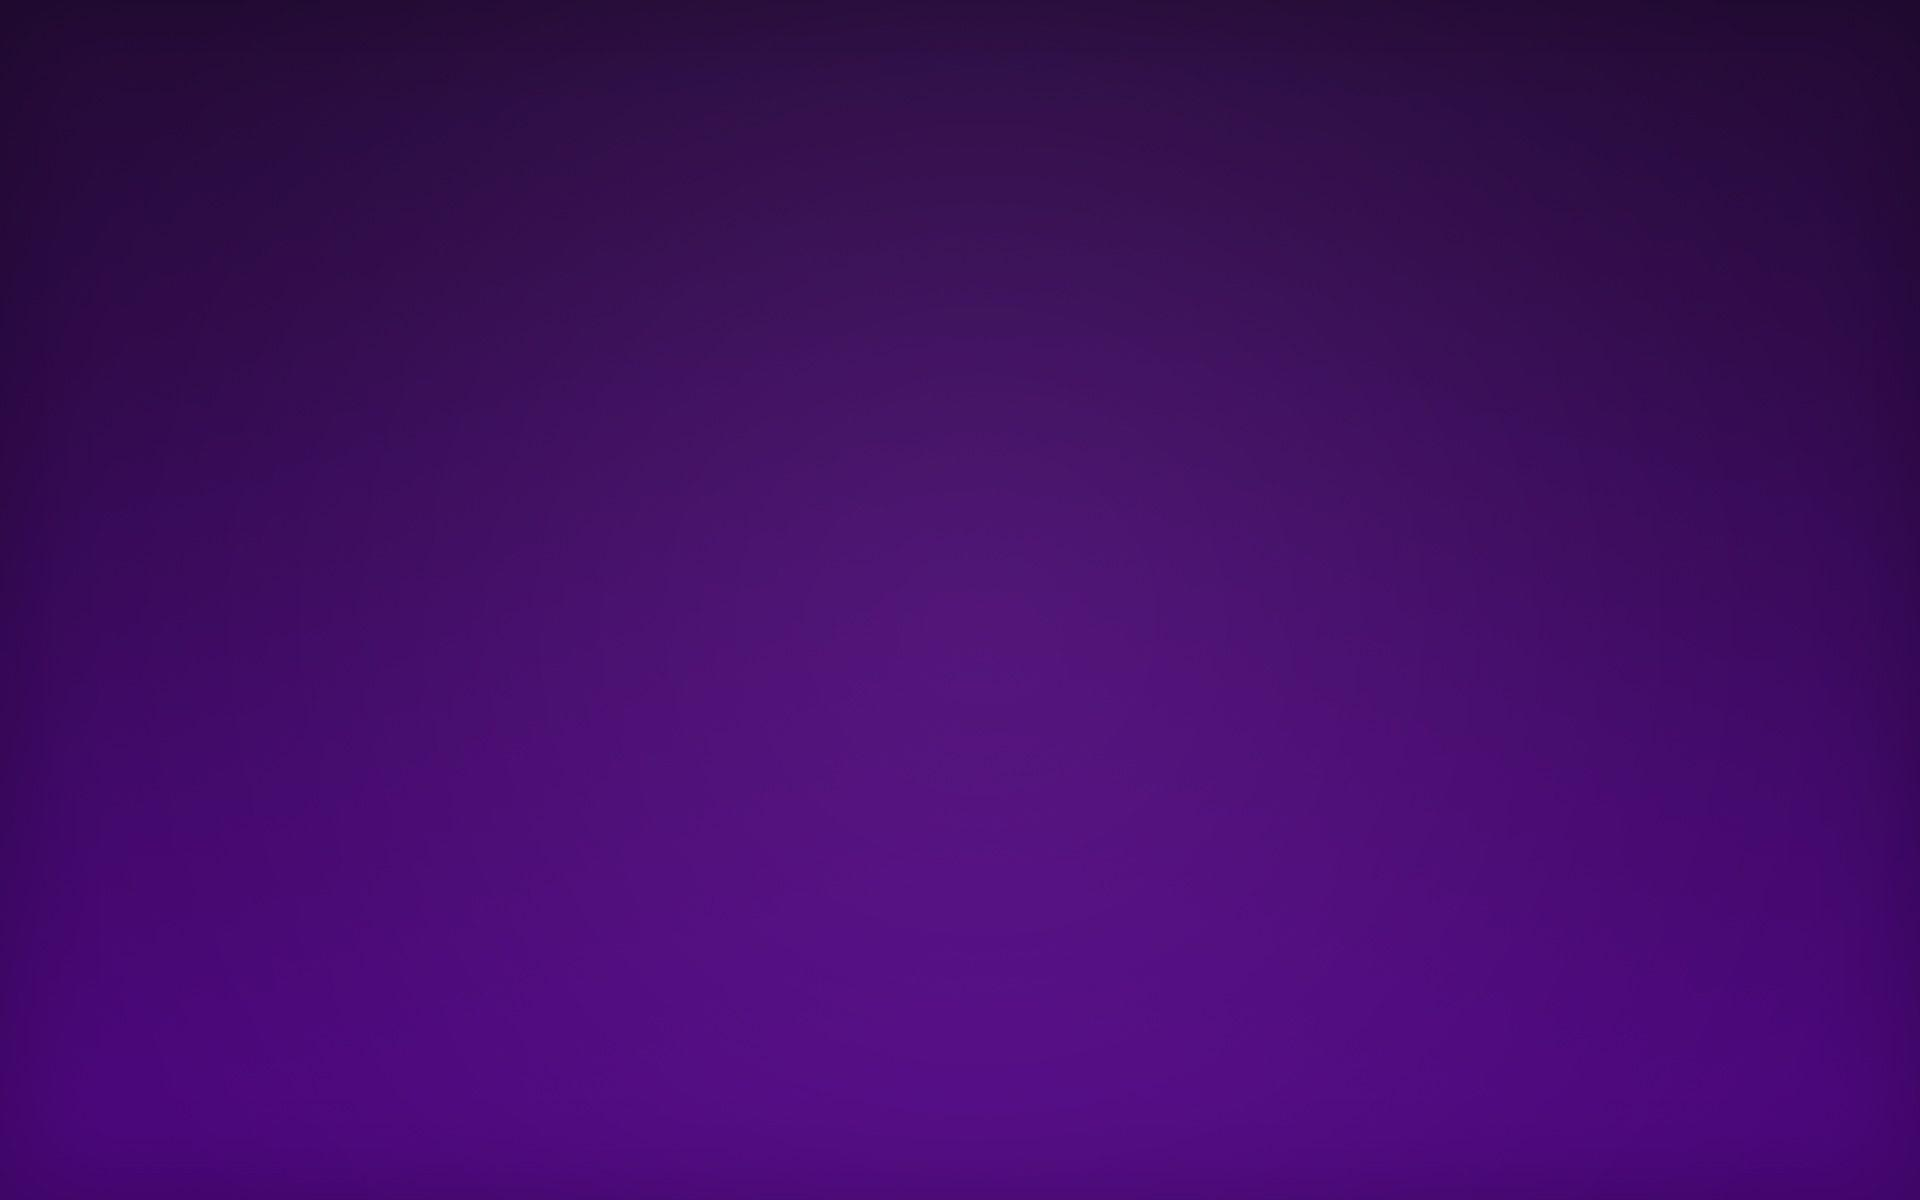 Dark purple wallpapers wallpaper cave for Plain purple wallpaper